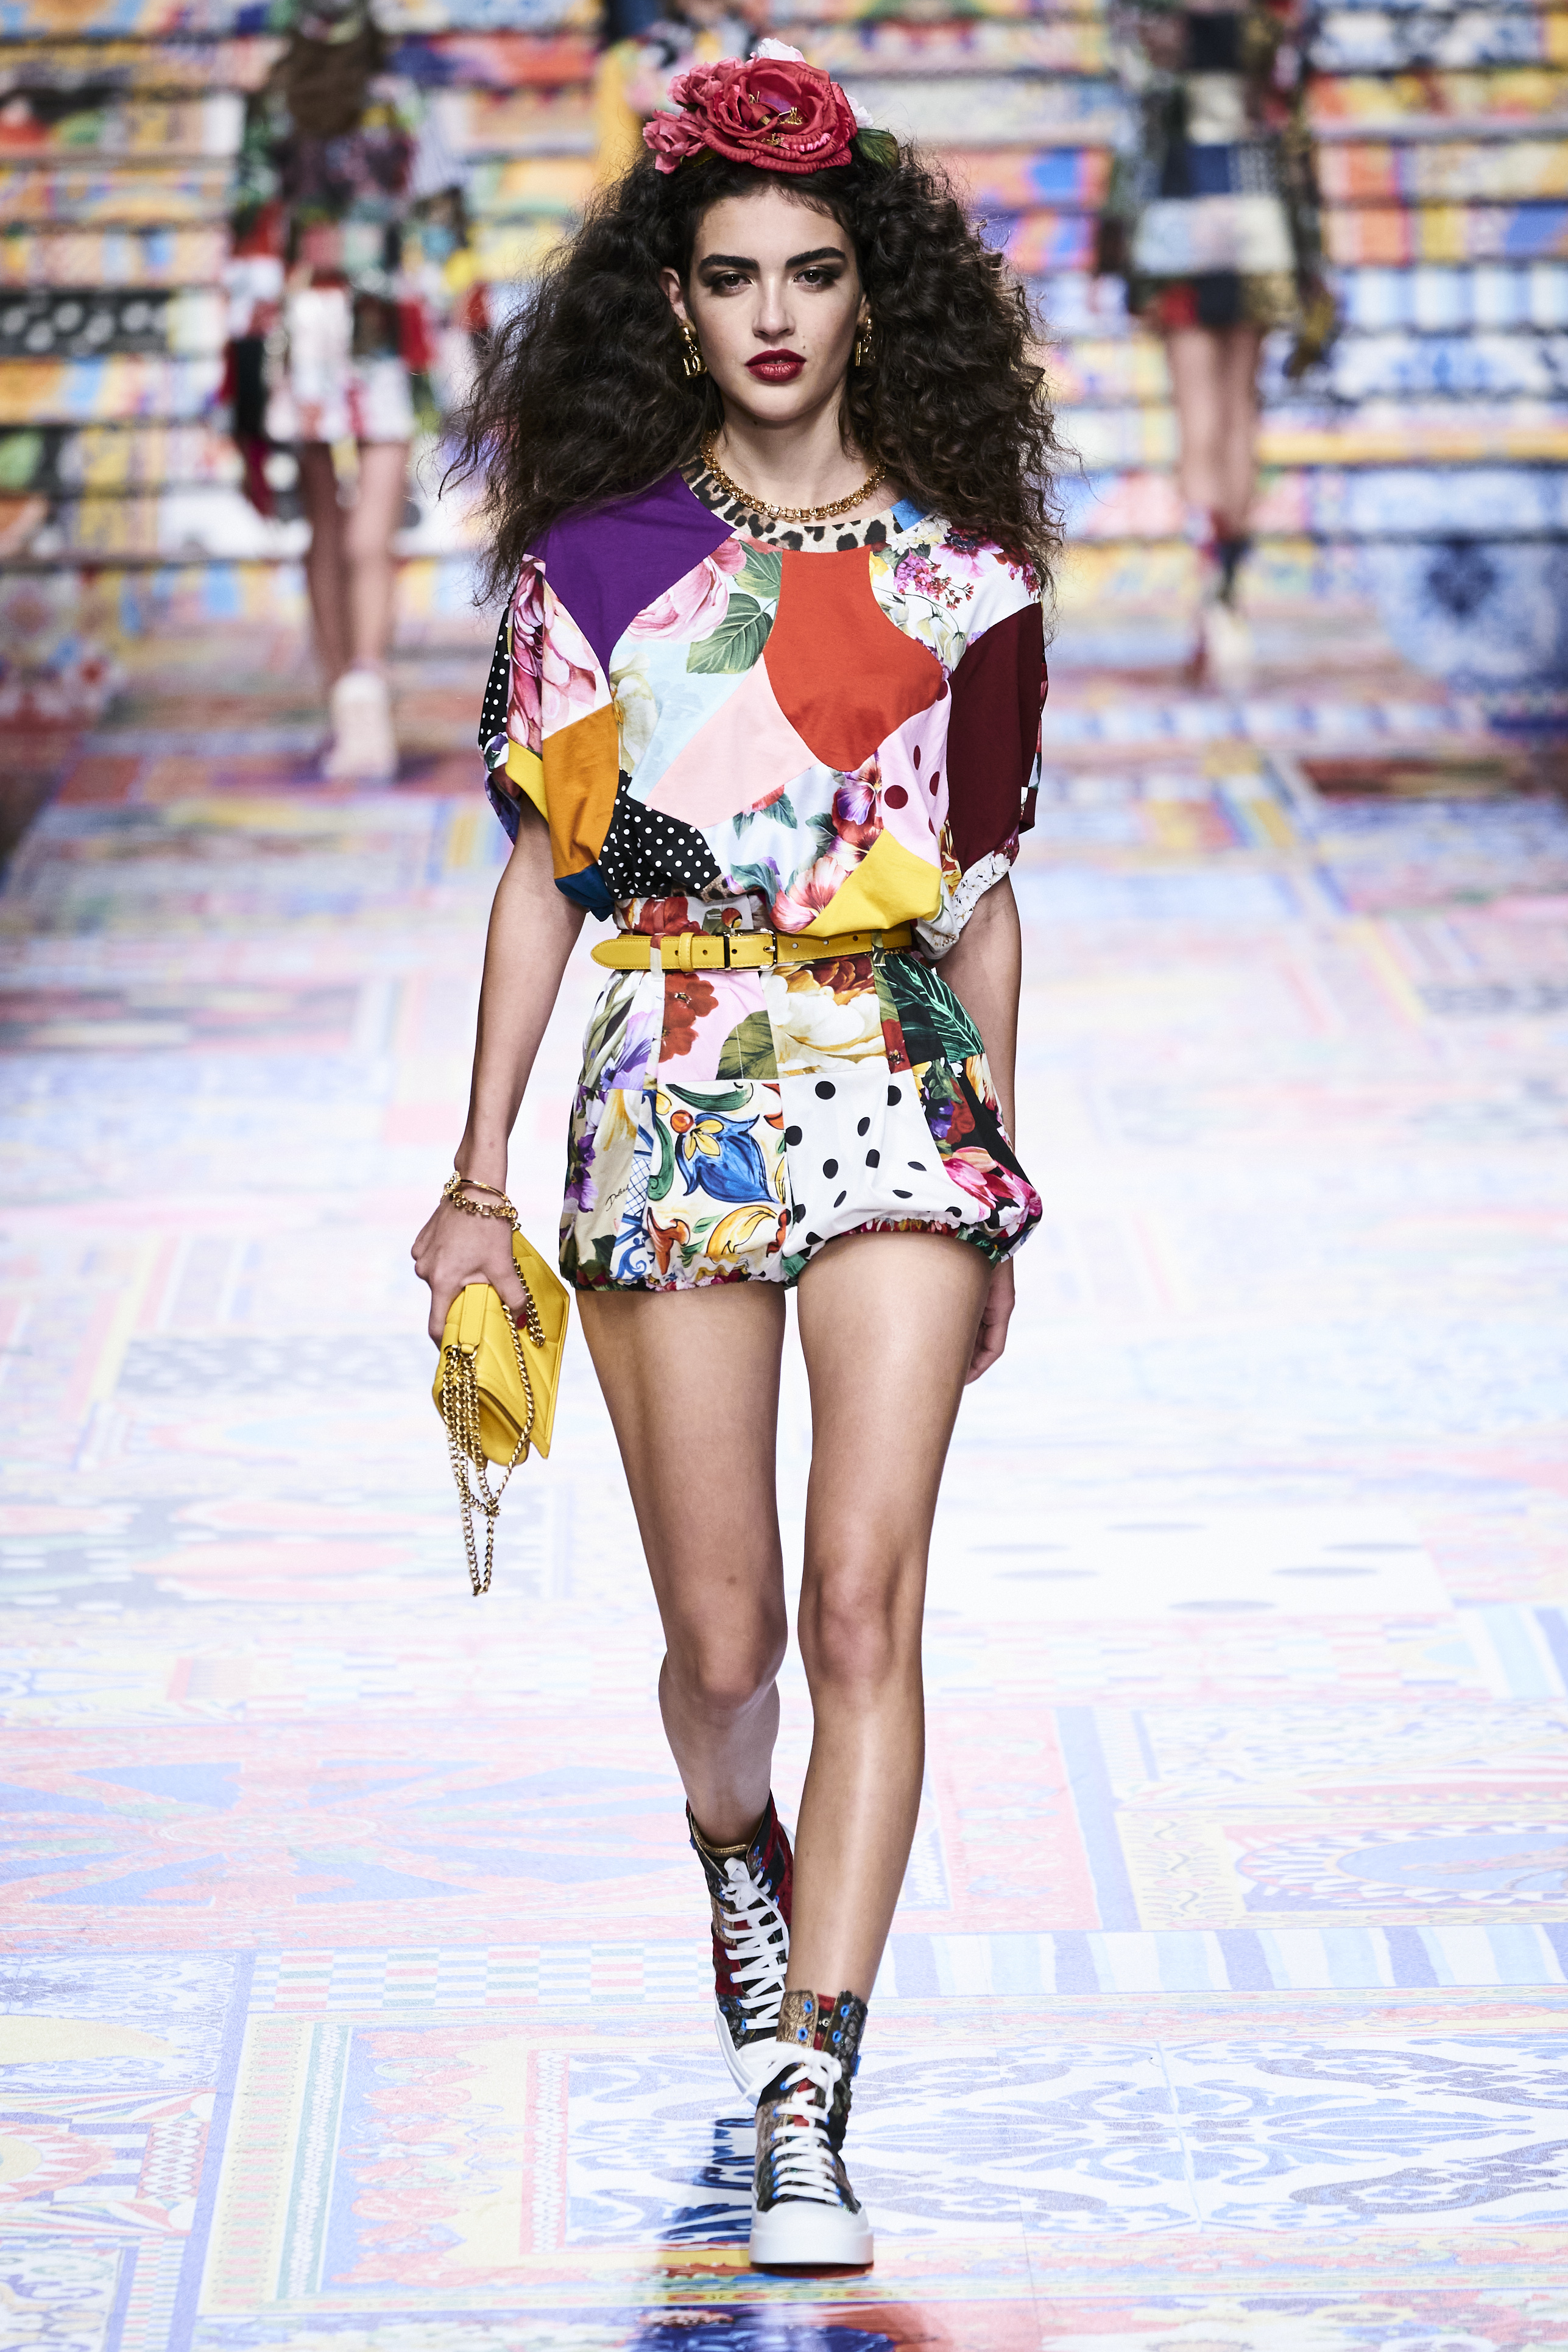 Prints galore: Dolce & Gabbana and Versace's Spring/Summer '21 collection (фото 2)